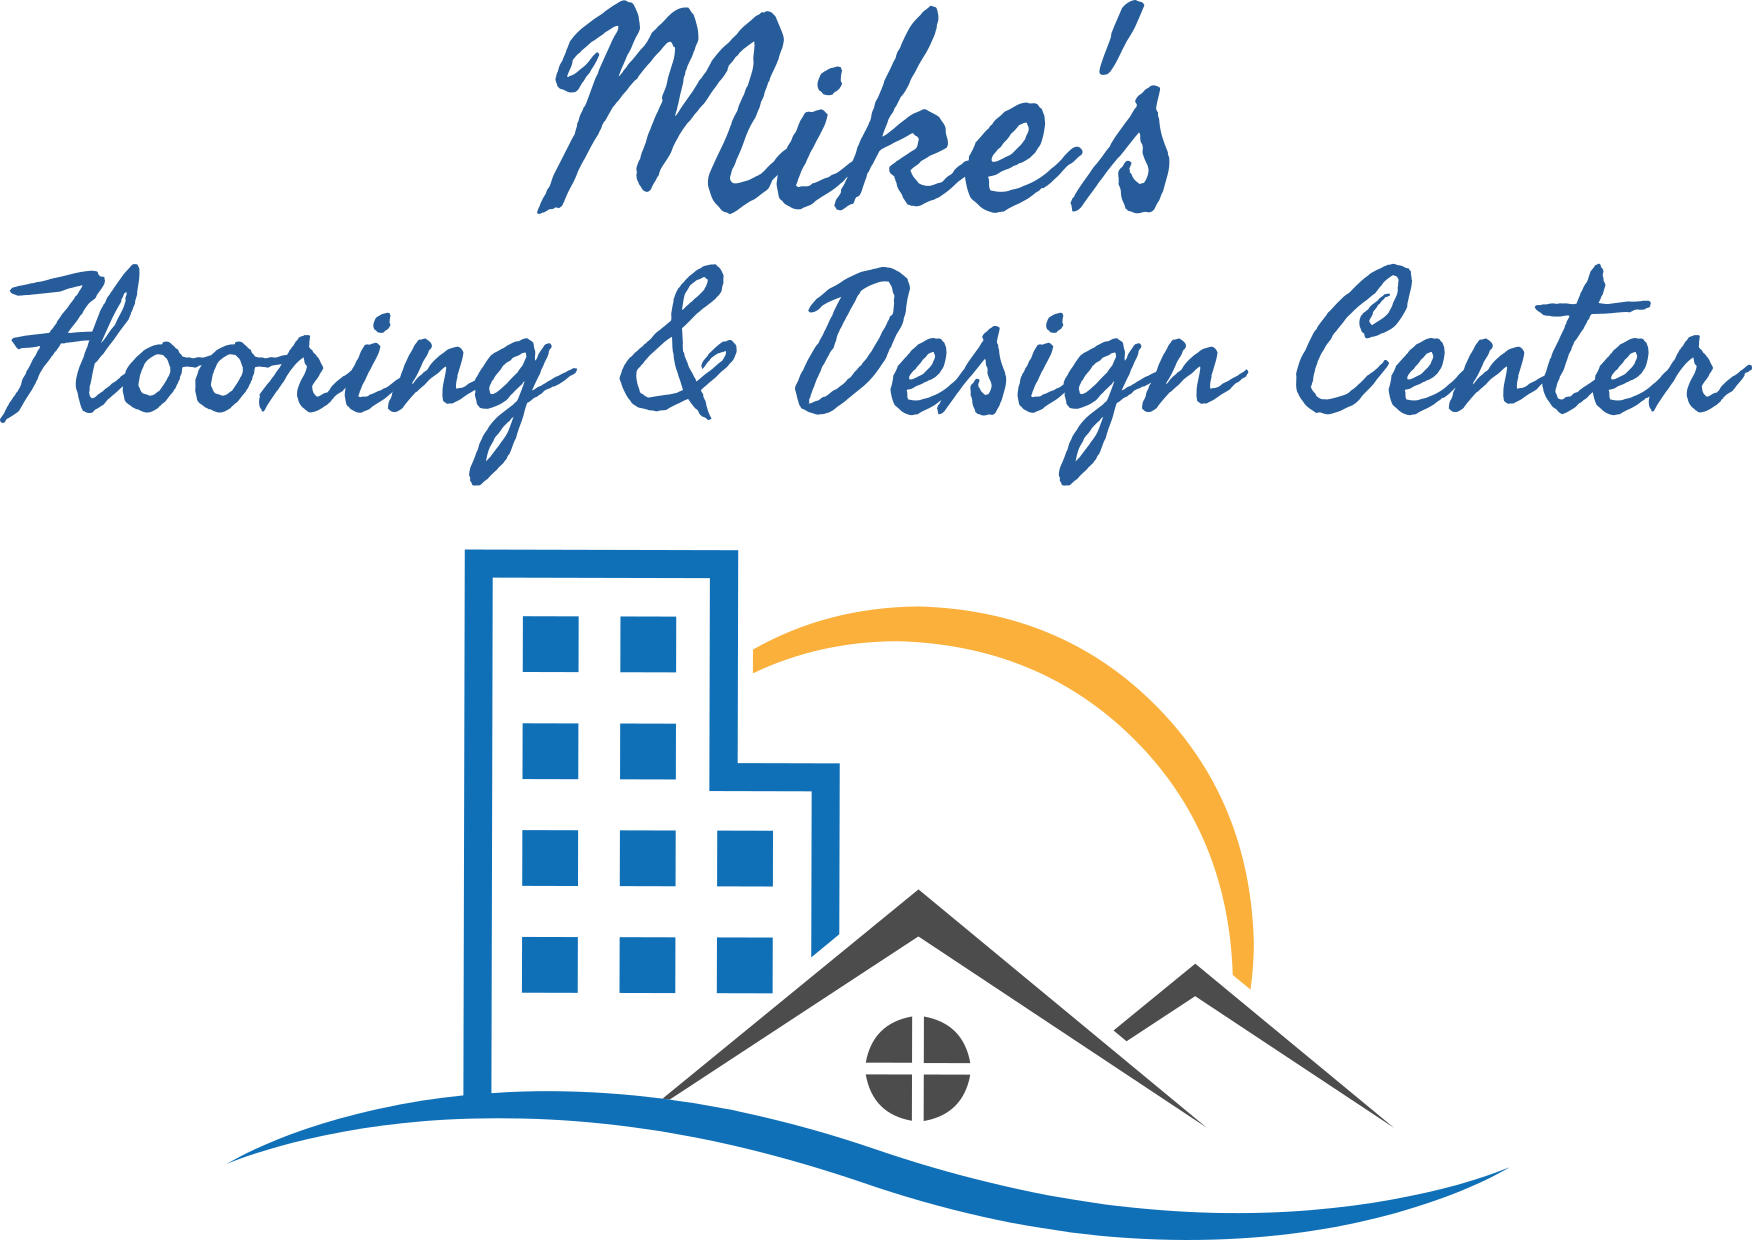 Mike's Flooring & Design Center